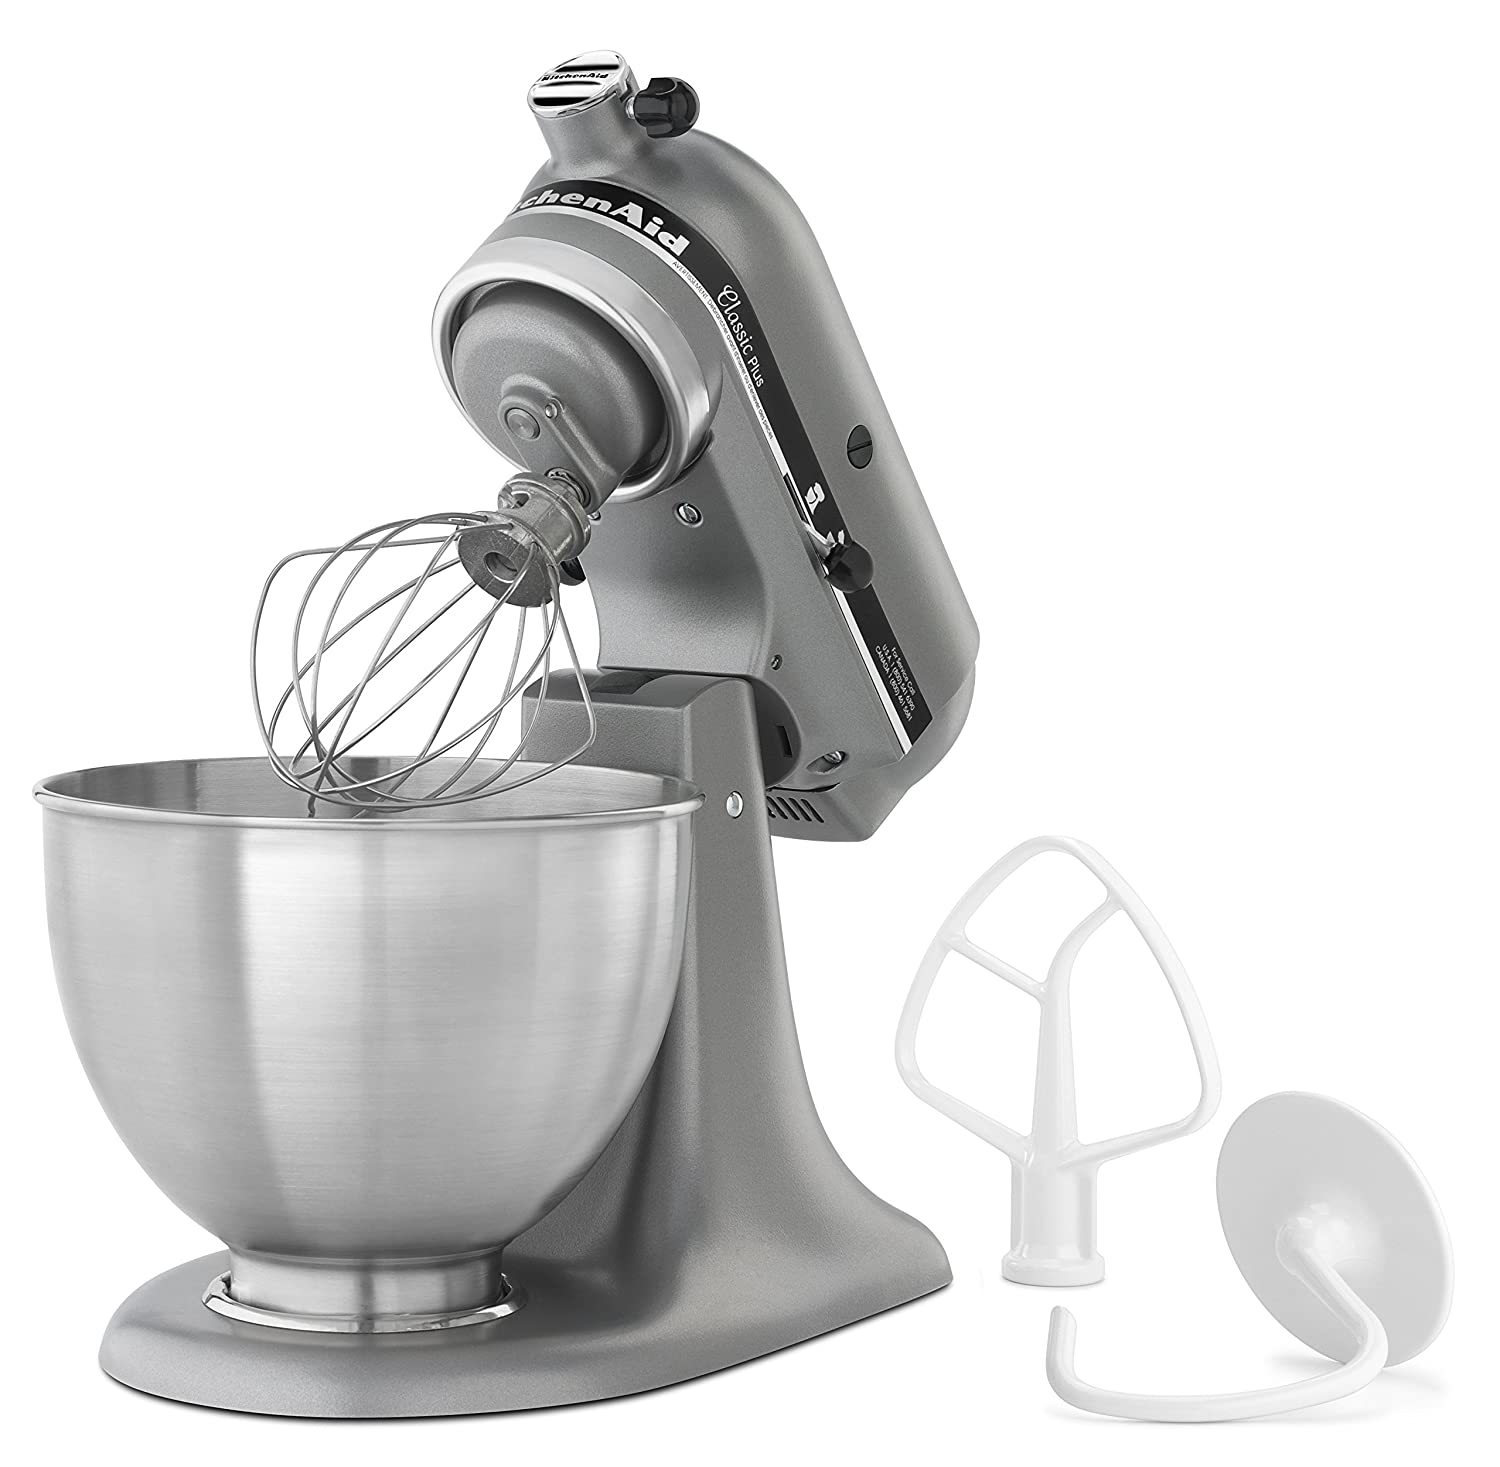 Amazon.com: KitchenAid KSM75SL Classic Plus 4.5 Qt. Tilt Head Stand Mixer,  Silver: Electric Stand Mixers: Kitchen U0026 Dining